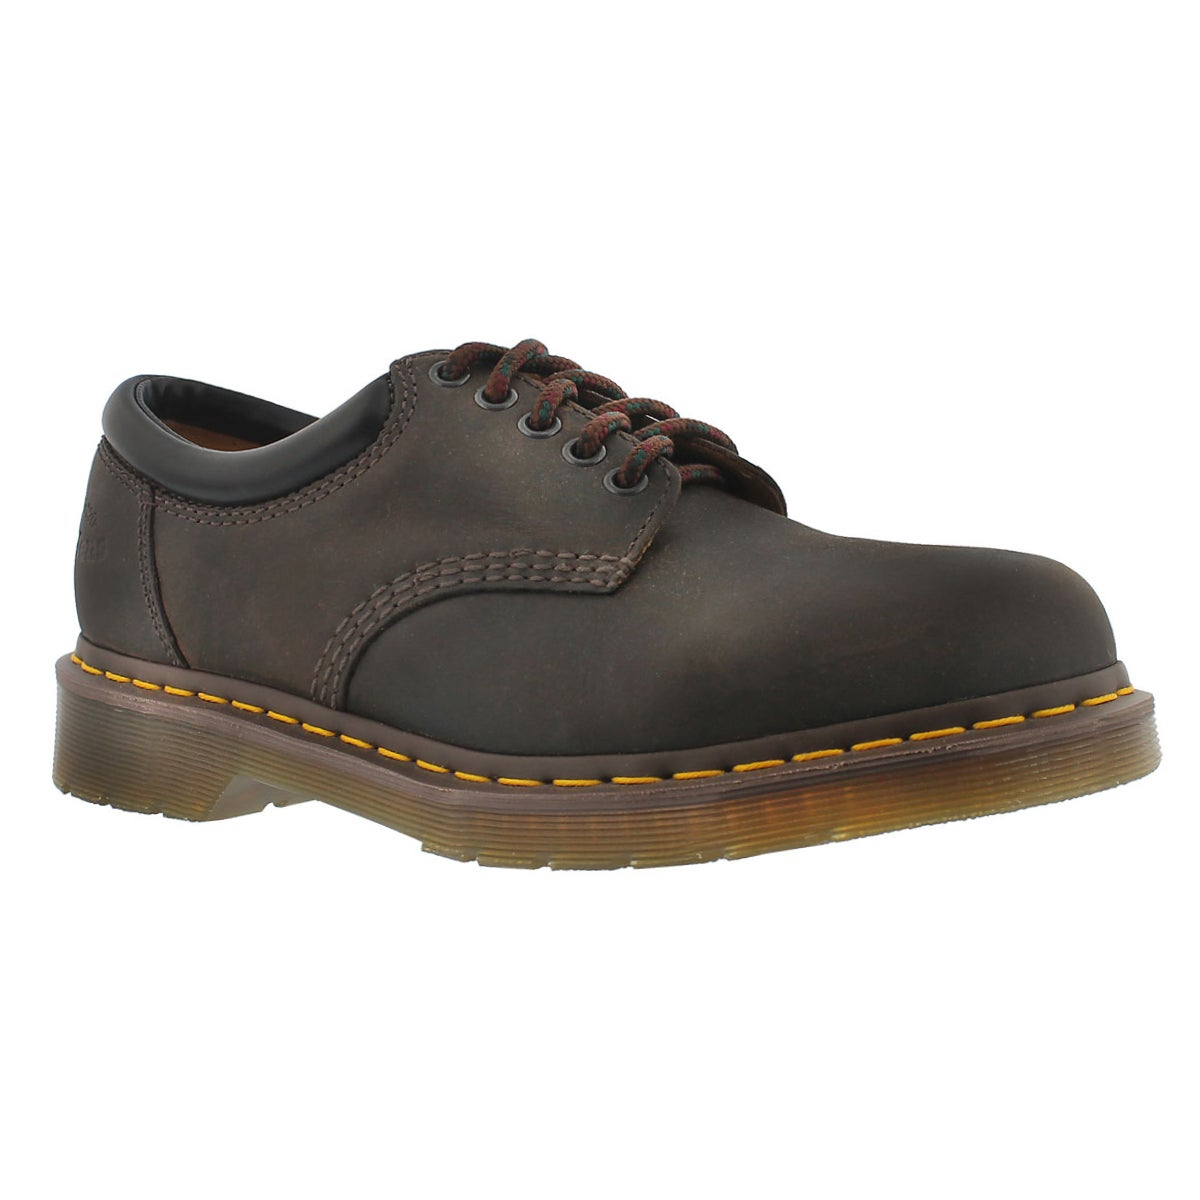 Mns 8053 gaucho 5-eye crazy horse oxford